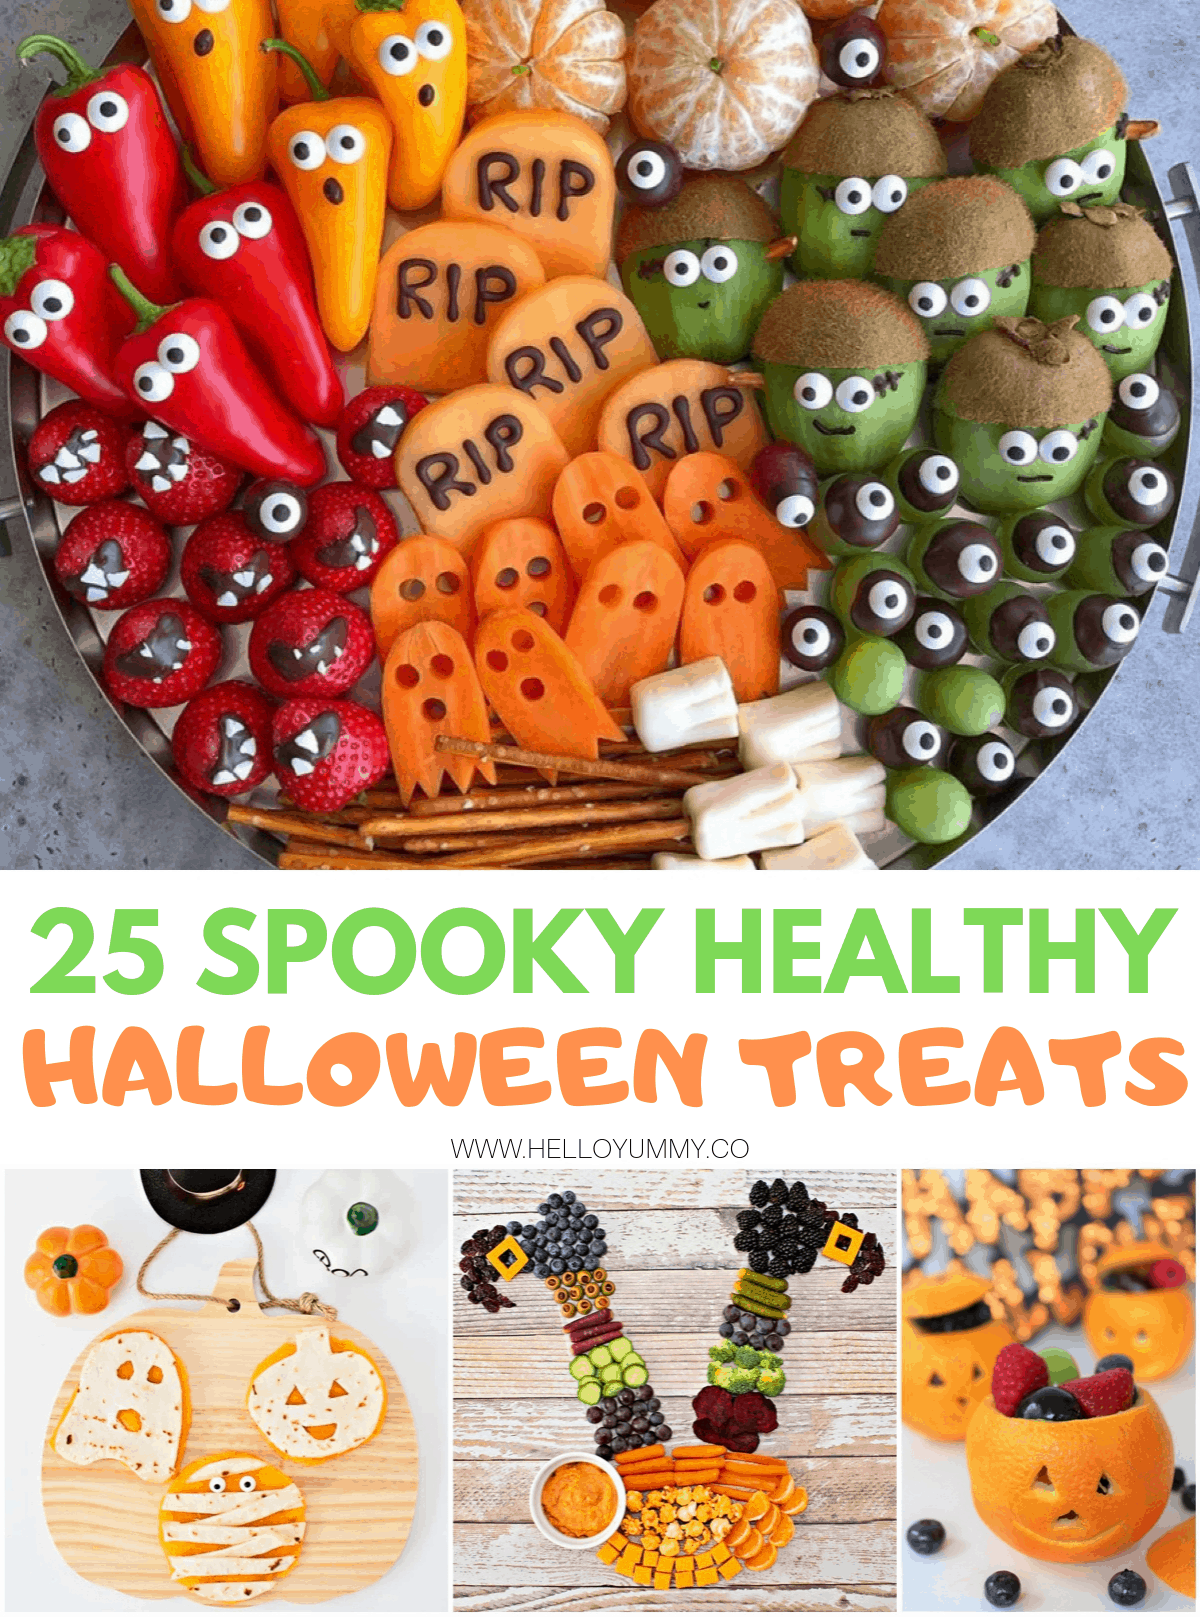 Healthy Halloween Snacks for Kids – 25 Spooky Holiday Treats